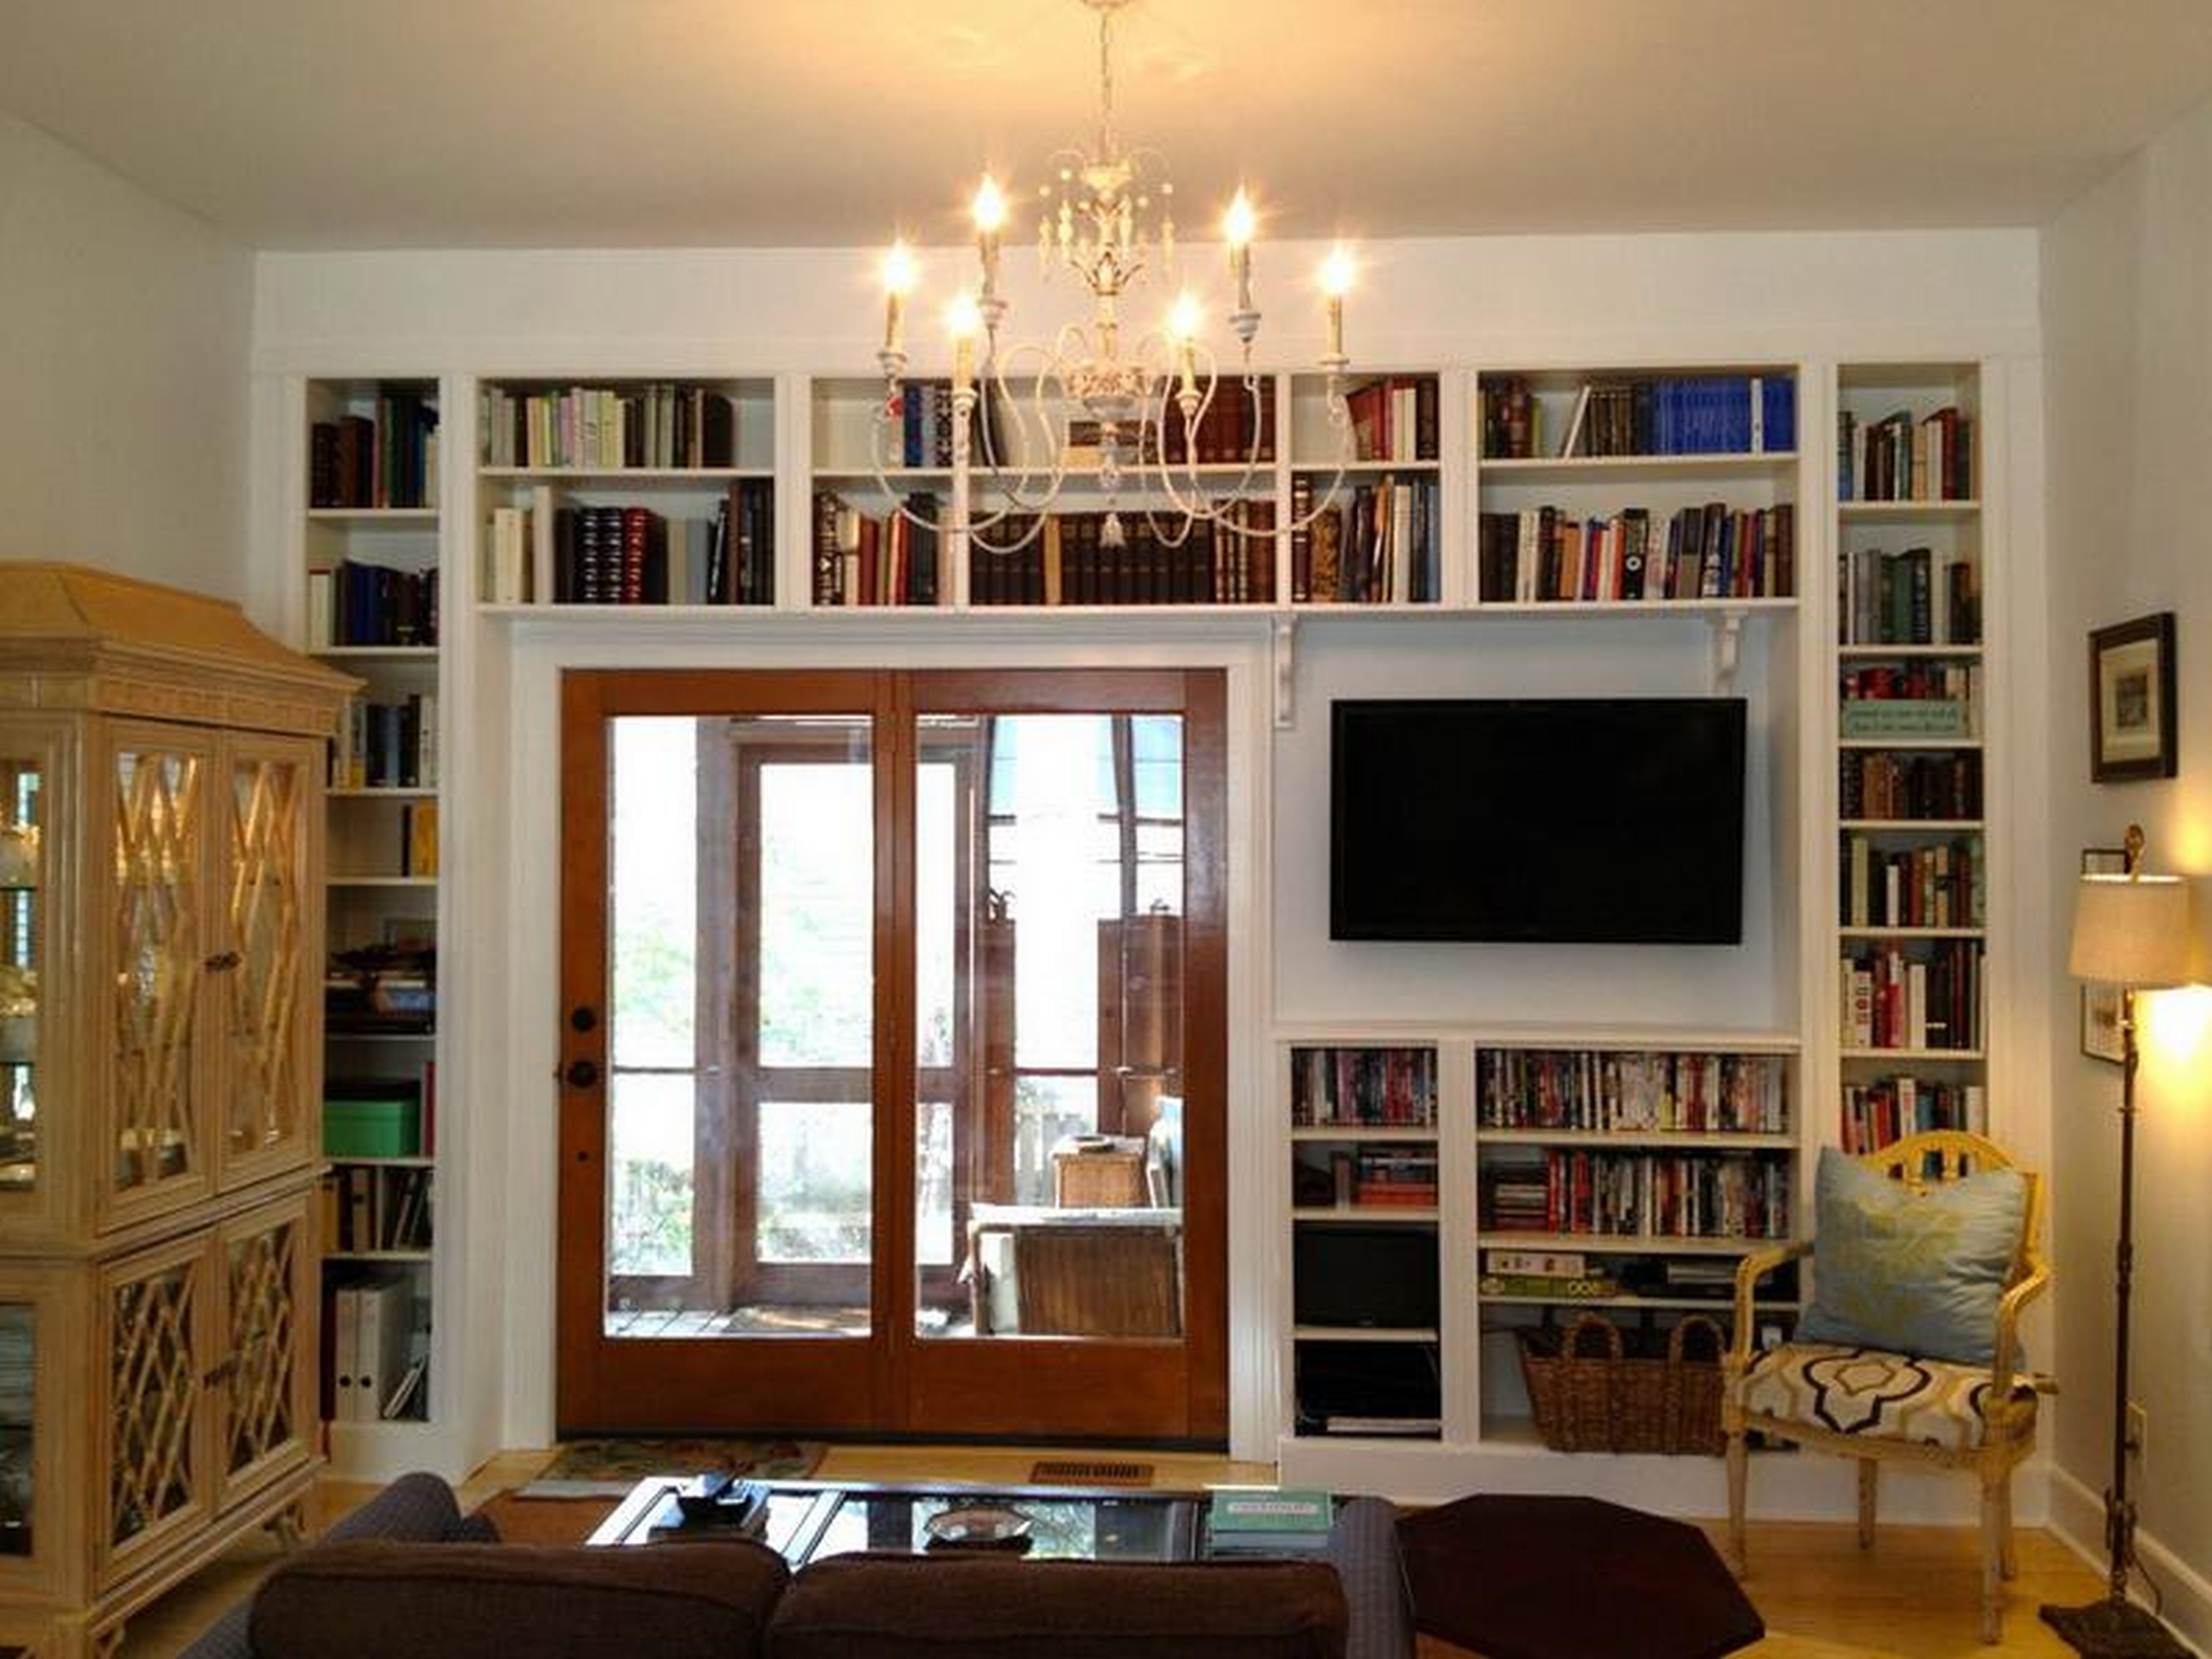 Modern-best-cool-models-expedit-bookcase-ideas-for-unusual-custom-bookcases -ideas-decorations-picture-cool-bookcase-1